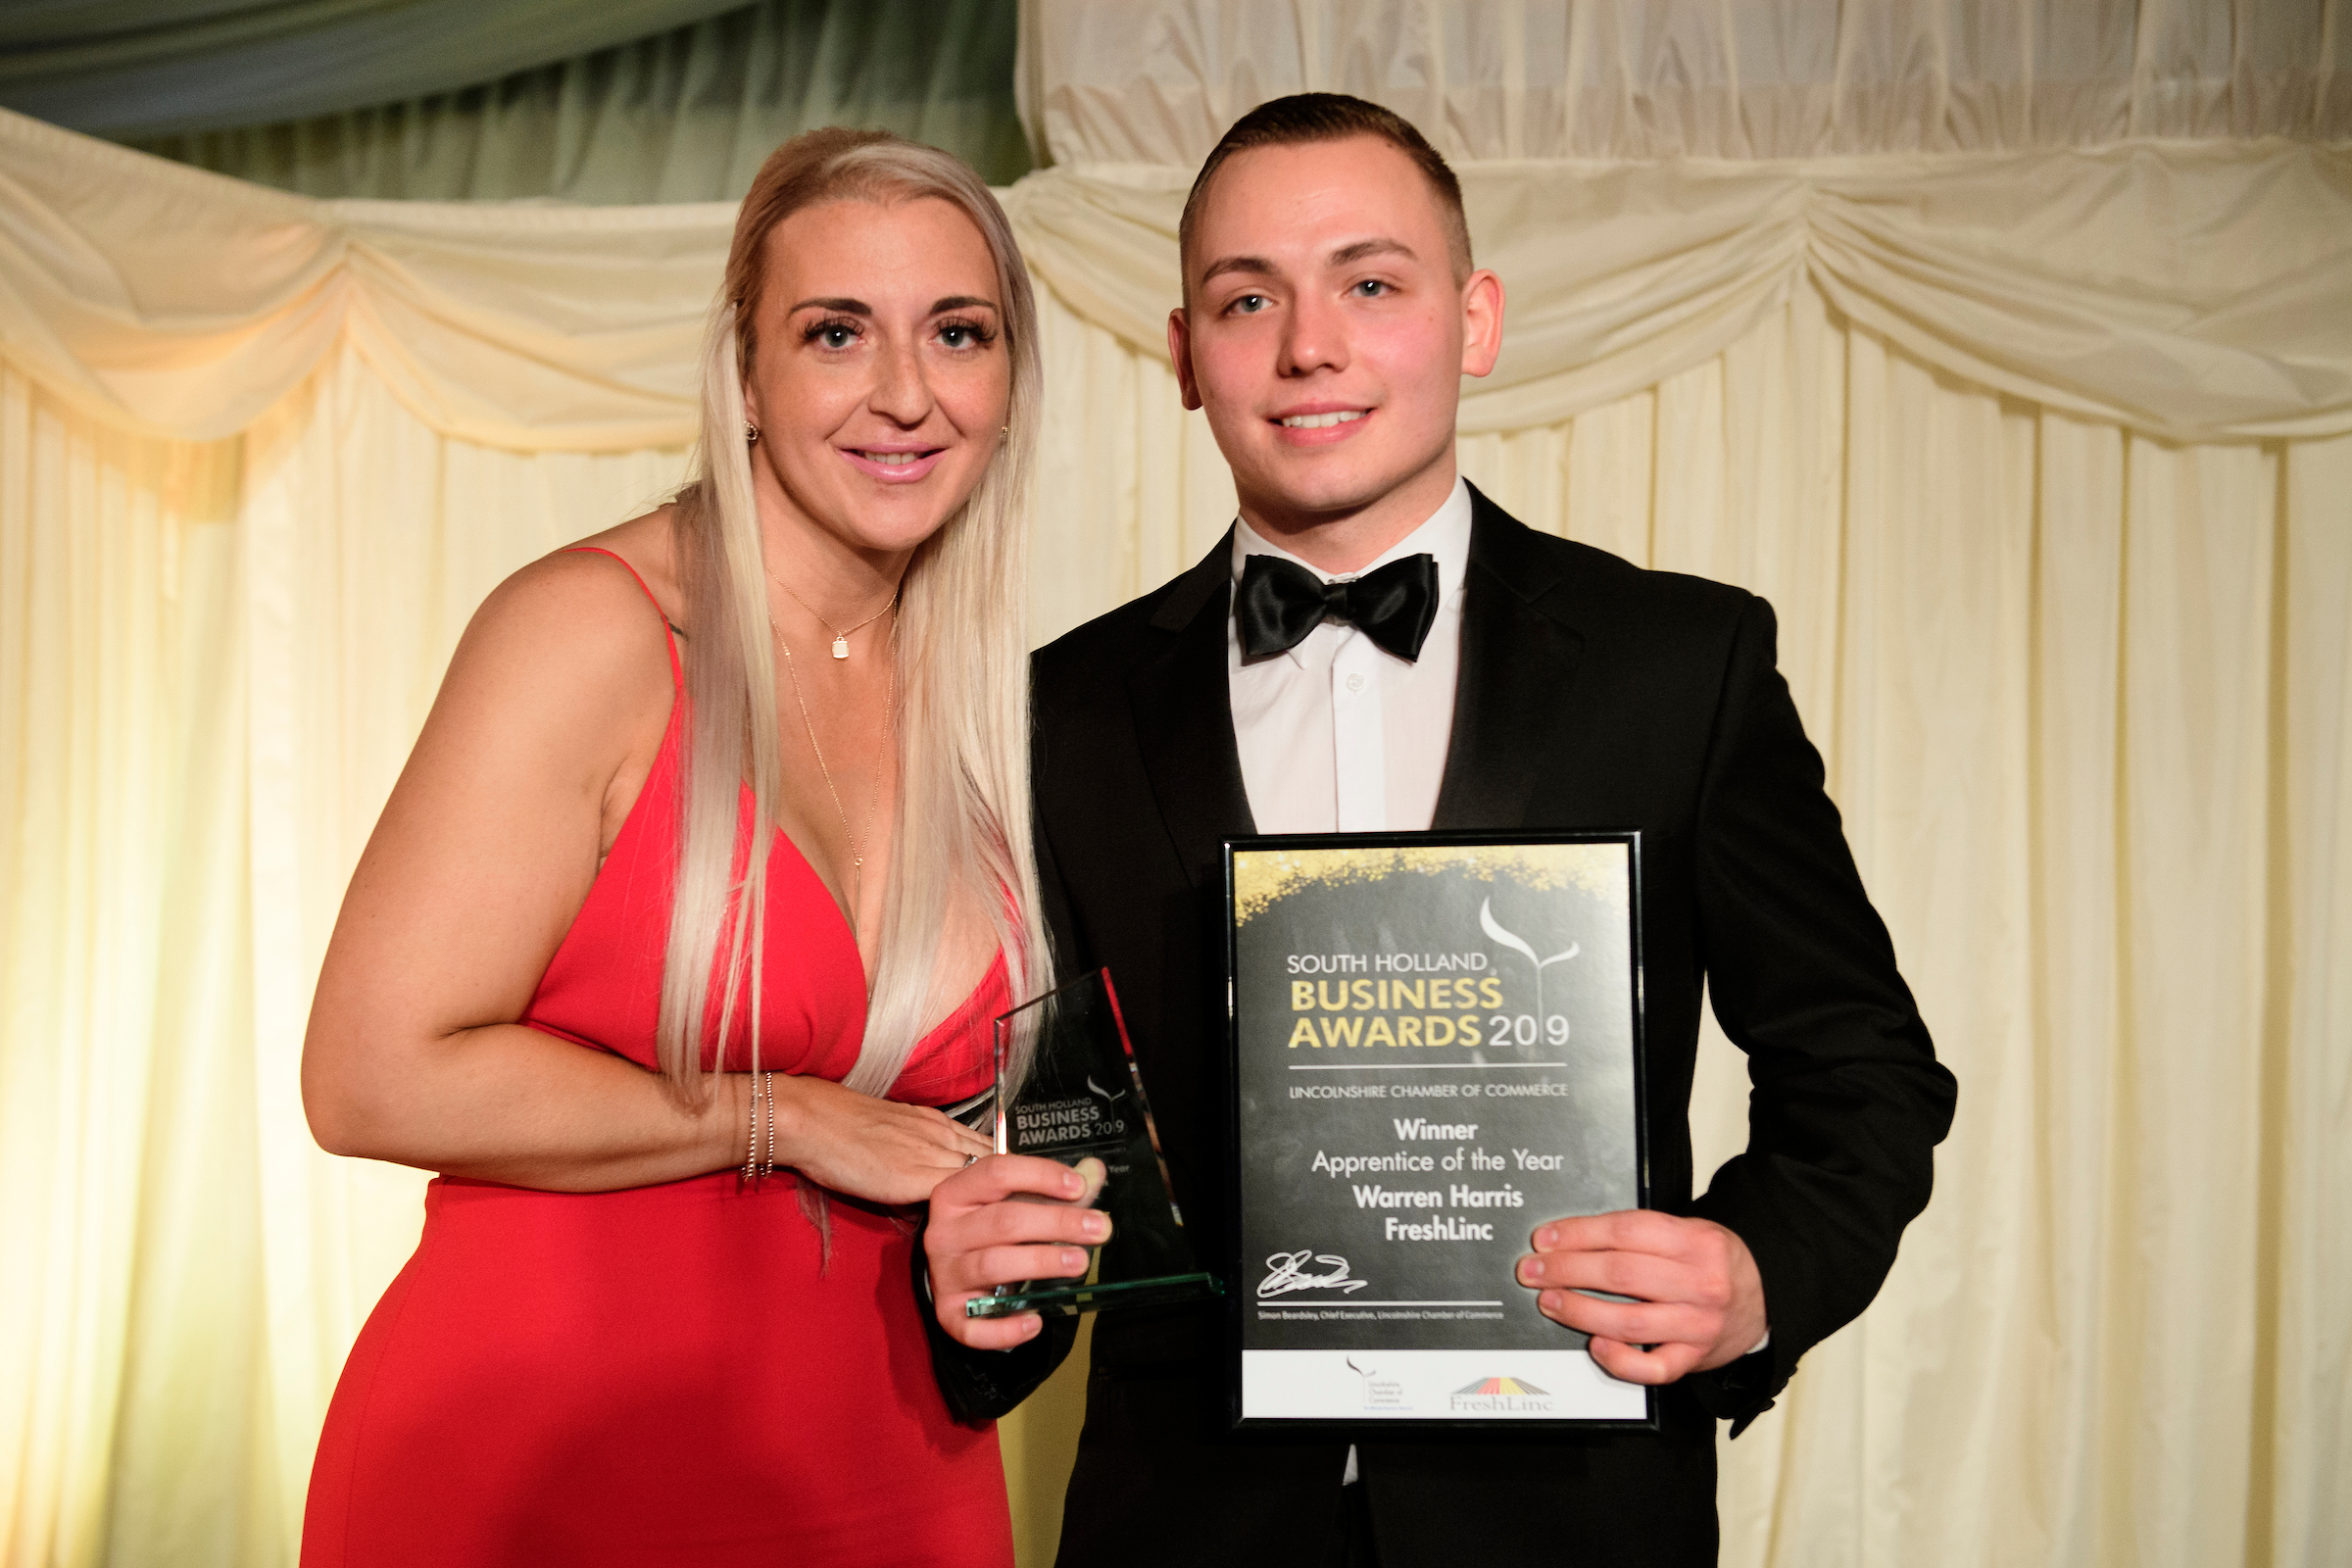 A young man holding a trophy and framed certificate next a blonde woman in red dress at the South Holland Business Awards 2019